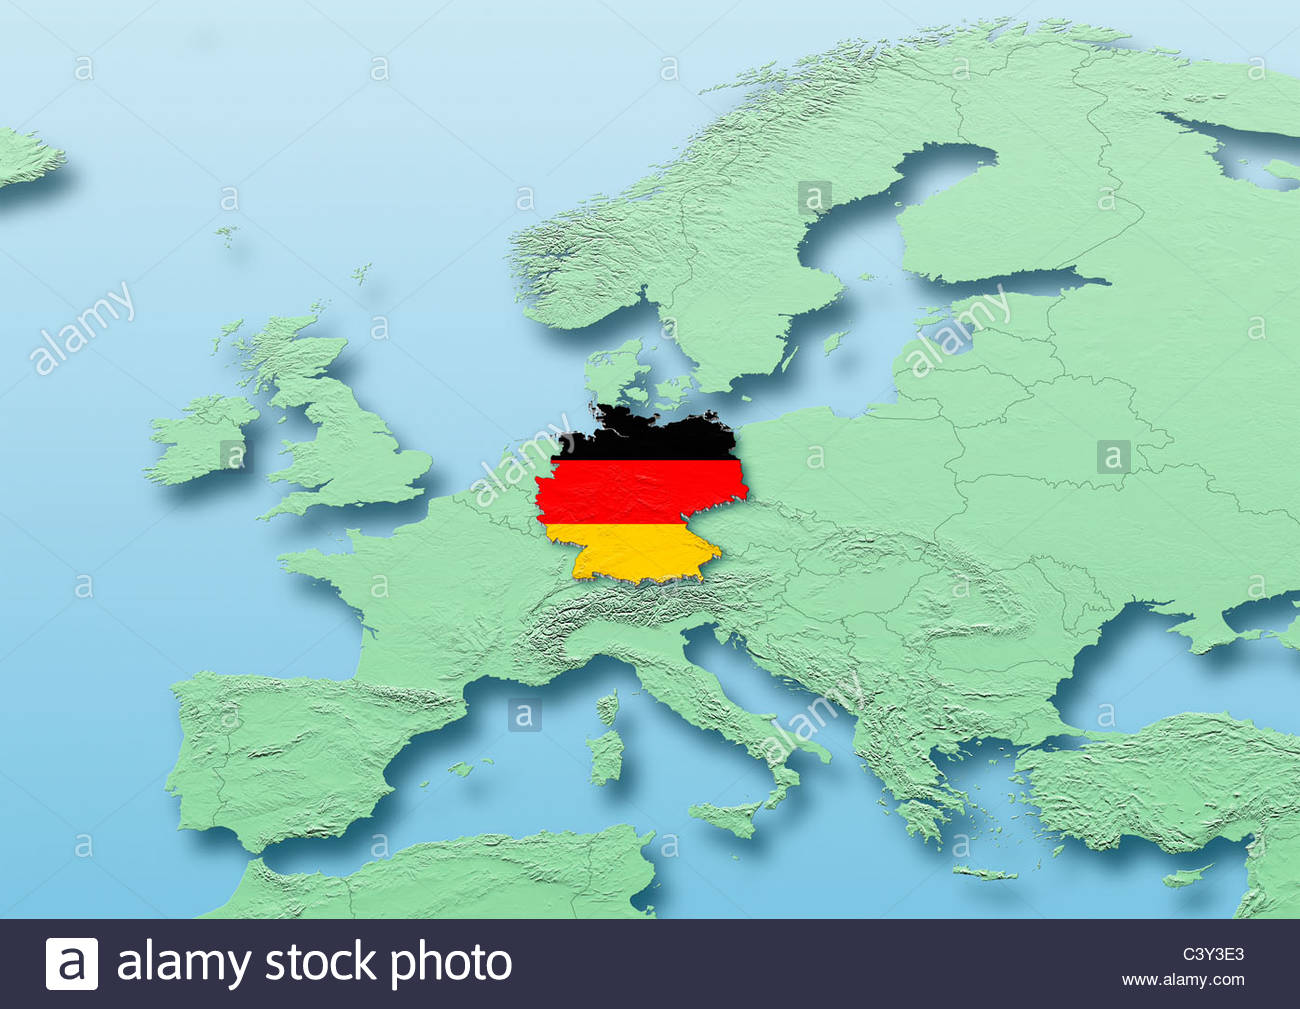 Germany Flag Map Western Europe Green Blue Physical Political